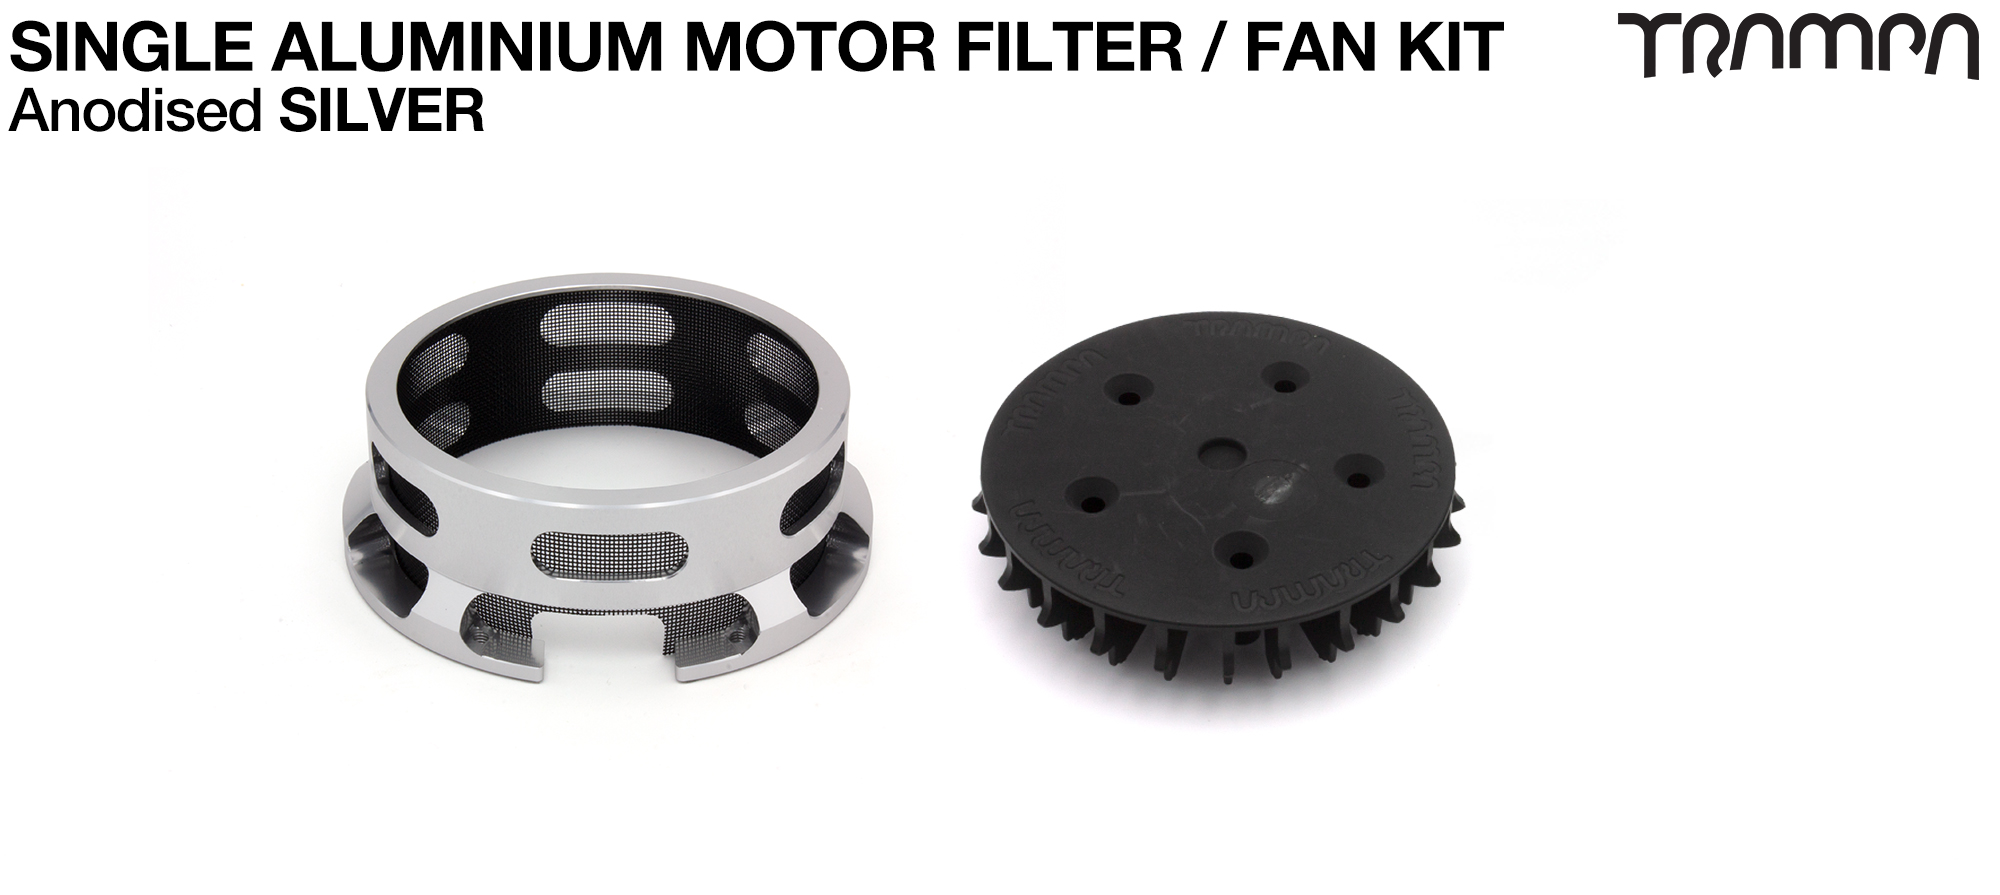 14FiFties BLACK Motor protection Housing with SILVER particle Filter & Fan - SINGLE